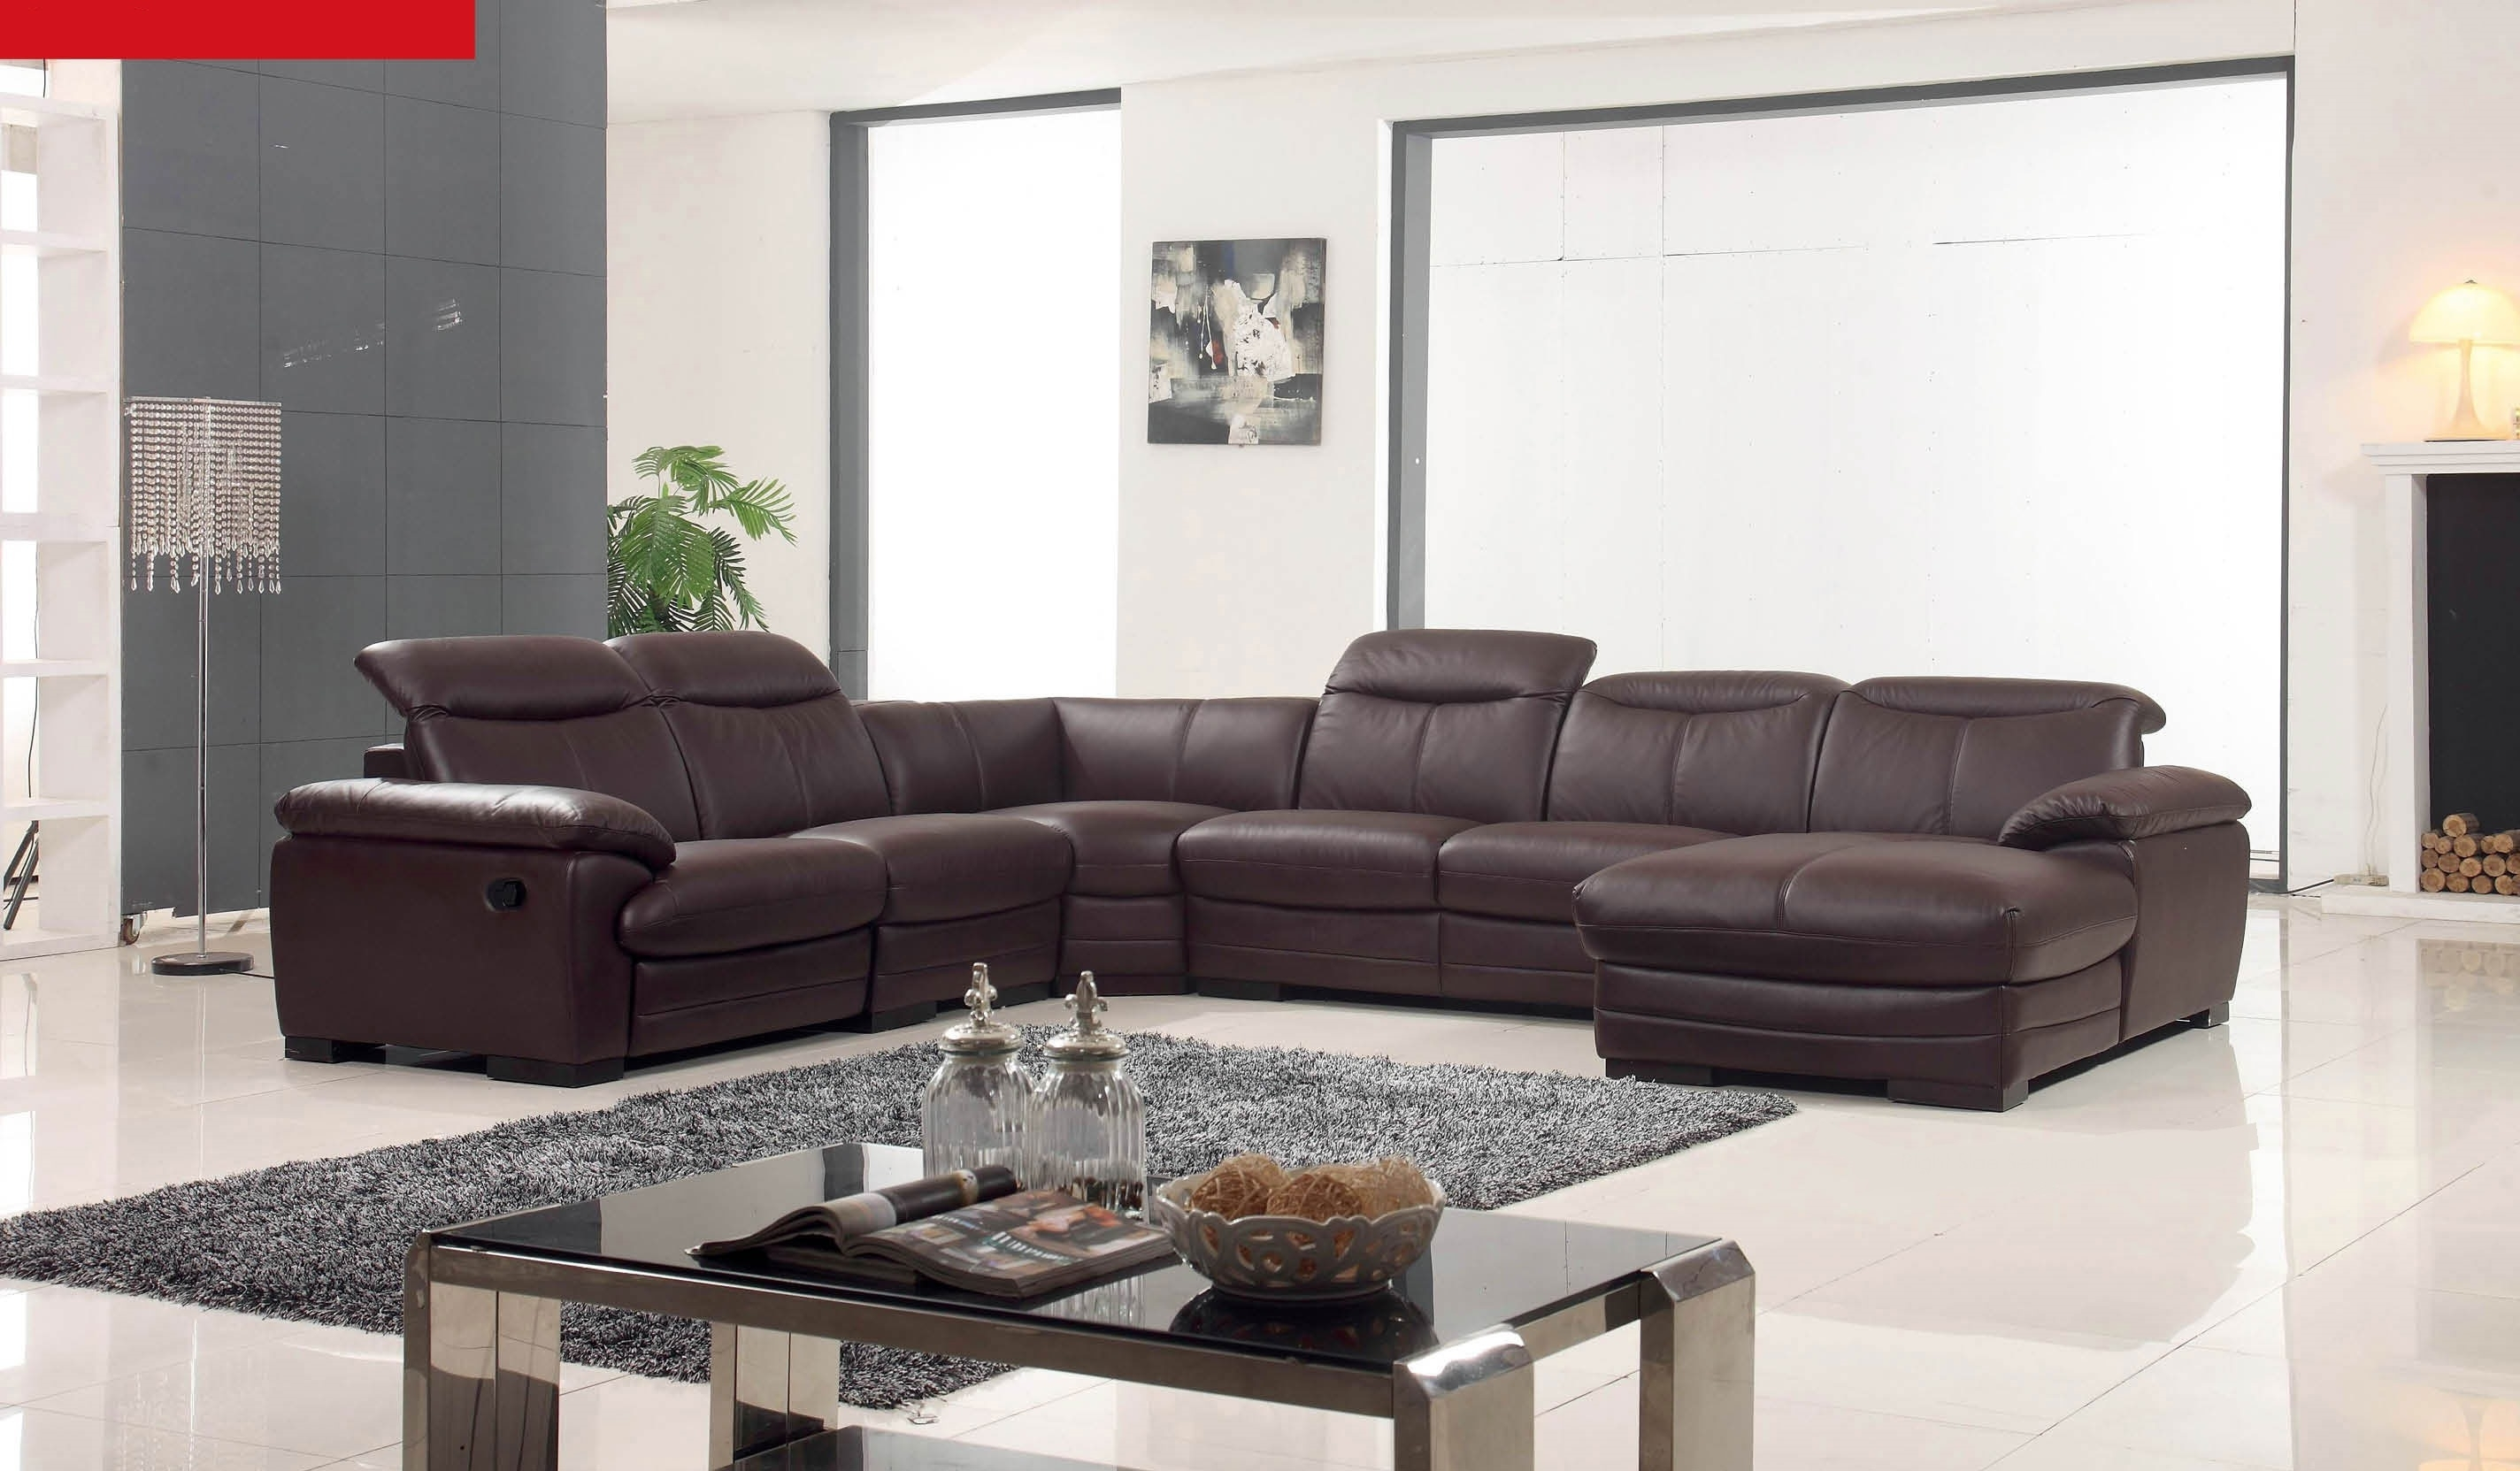 Sectional Sofas: Vermont Sectional Sofa Jp 2146 Sectional/4 – Ba In Popular Vt Sectional Sofas (View 2 of 15)